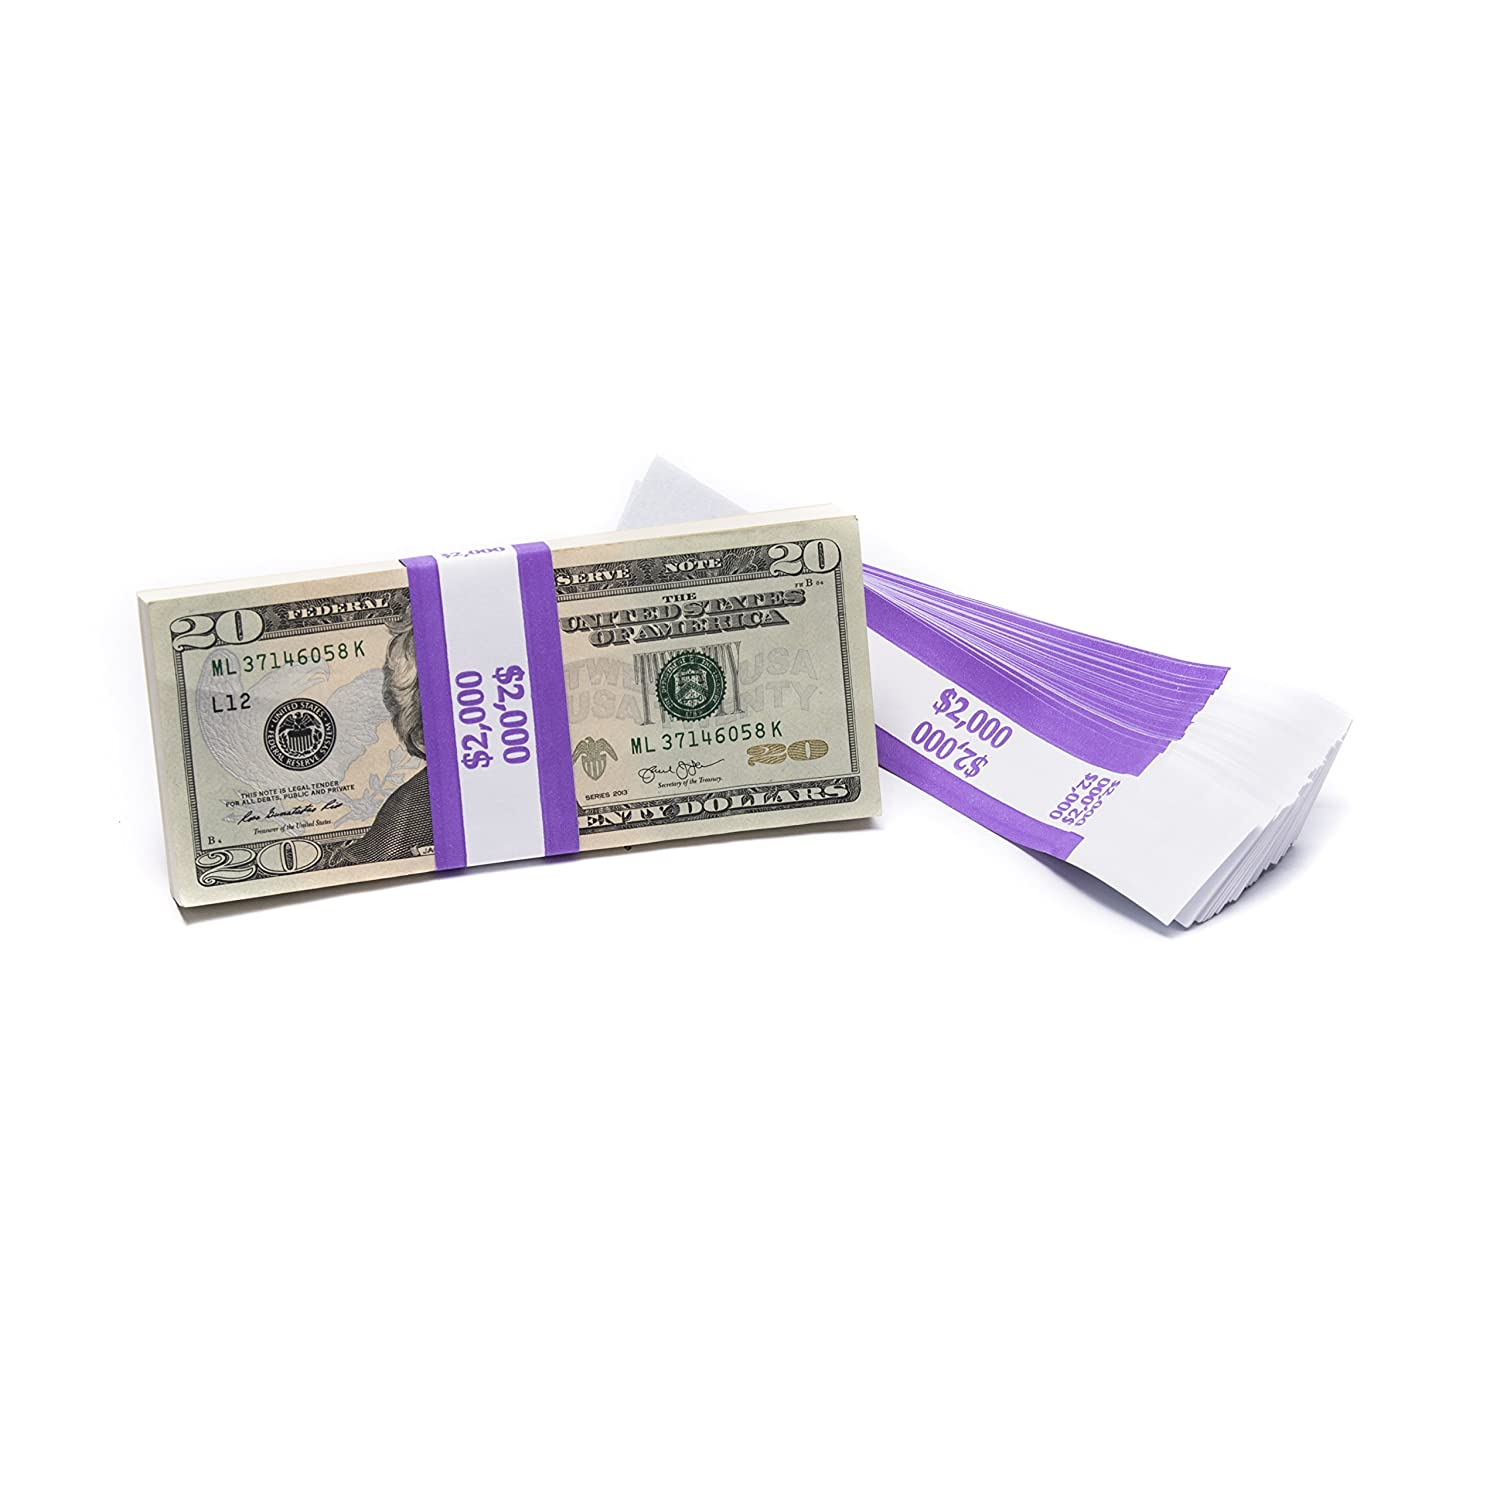 Barred ABA $2,000 Currency Band Bundles (2,000 Bands)